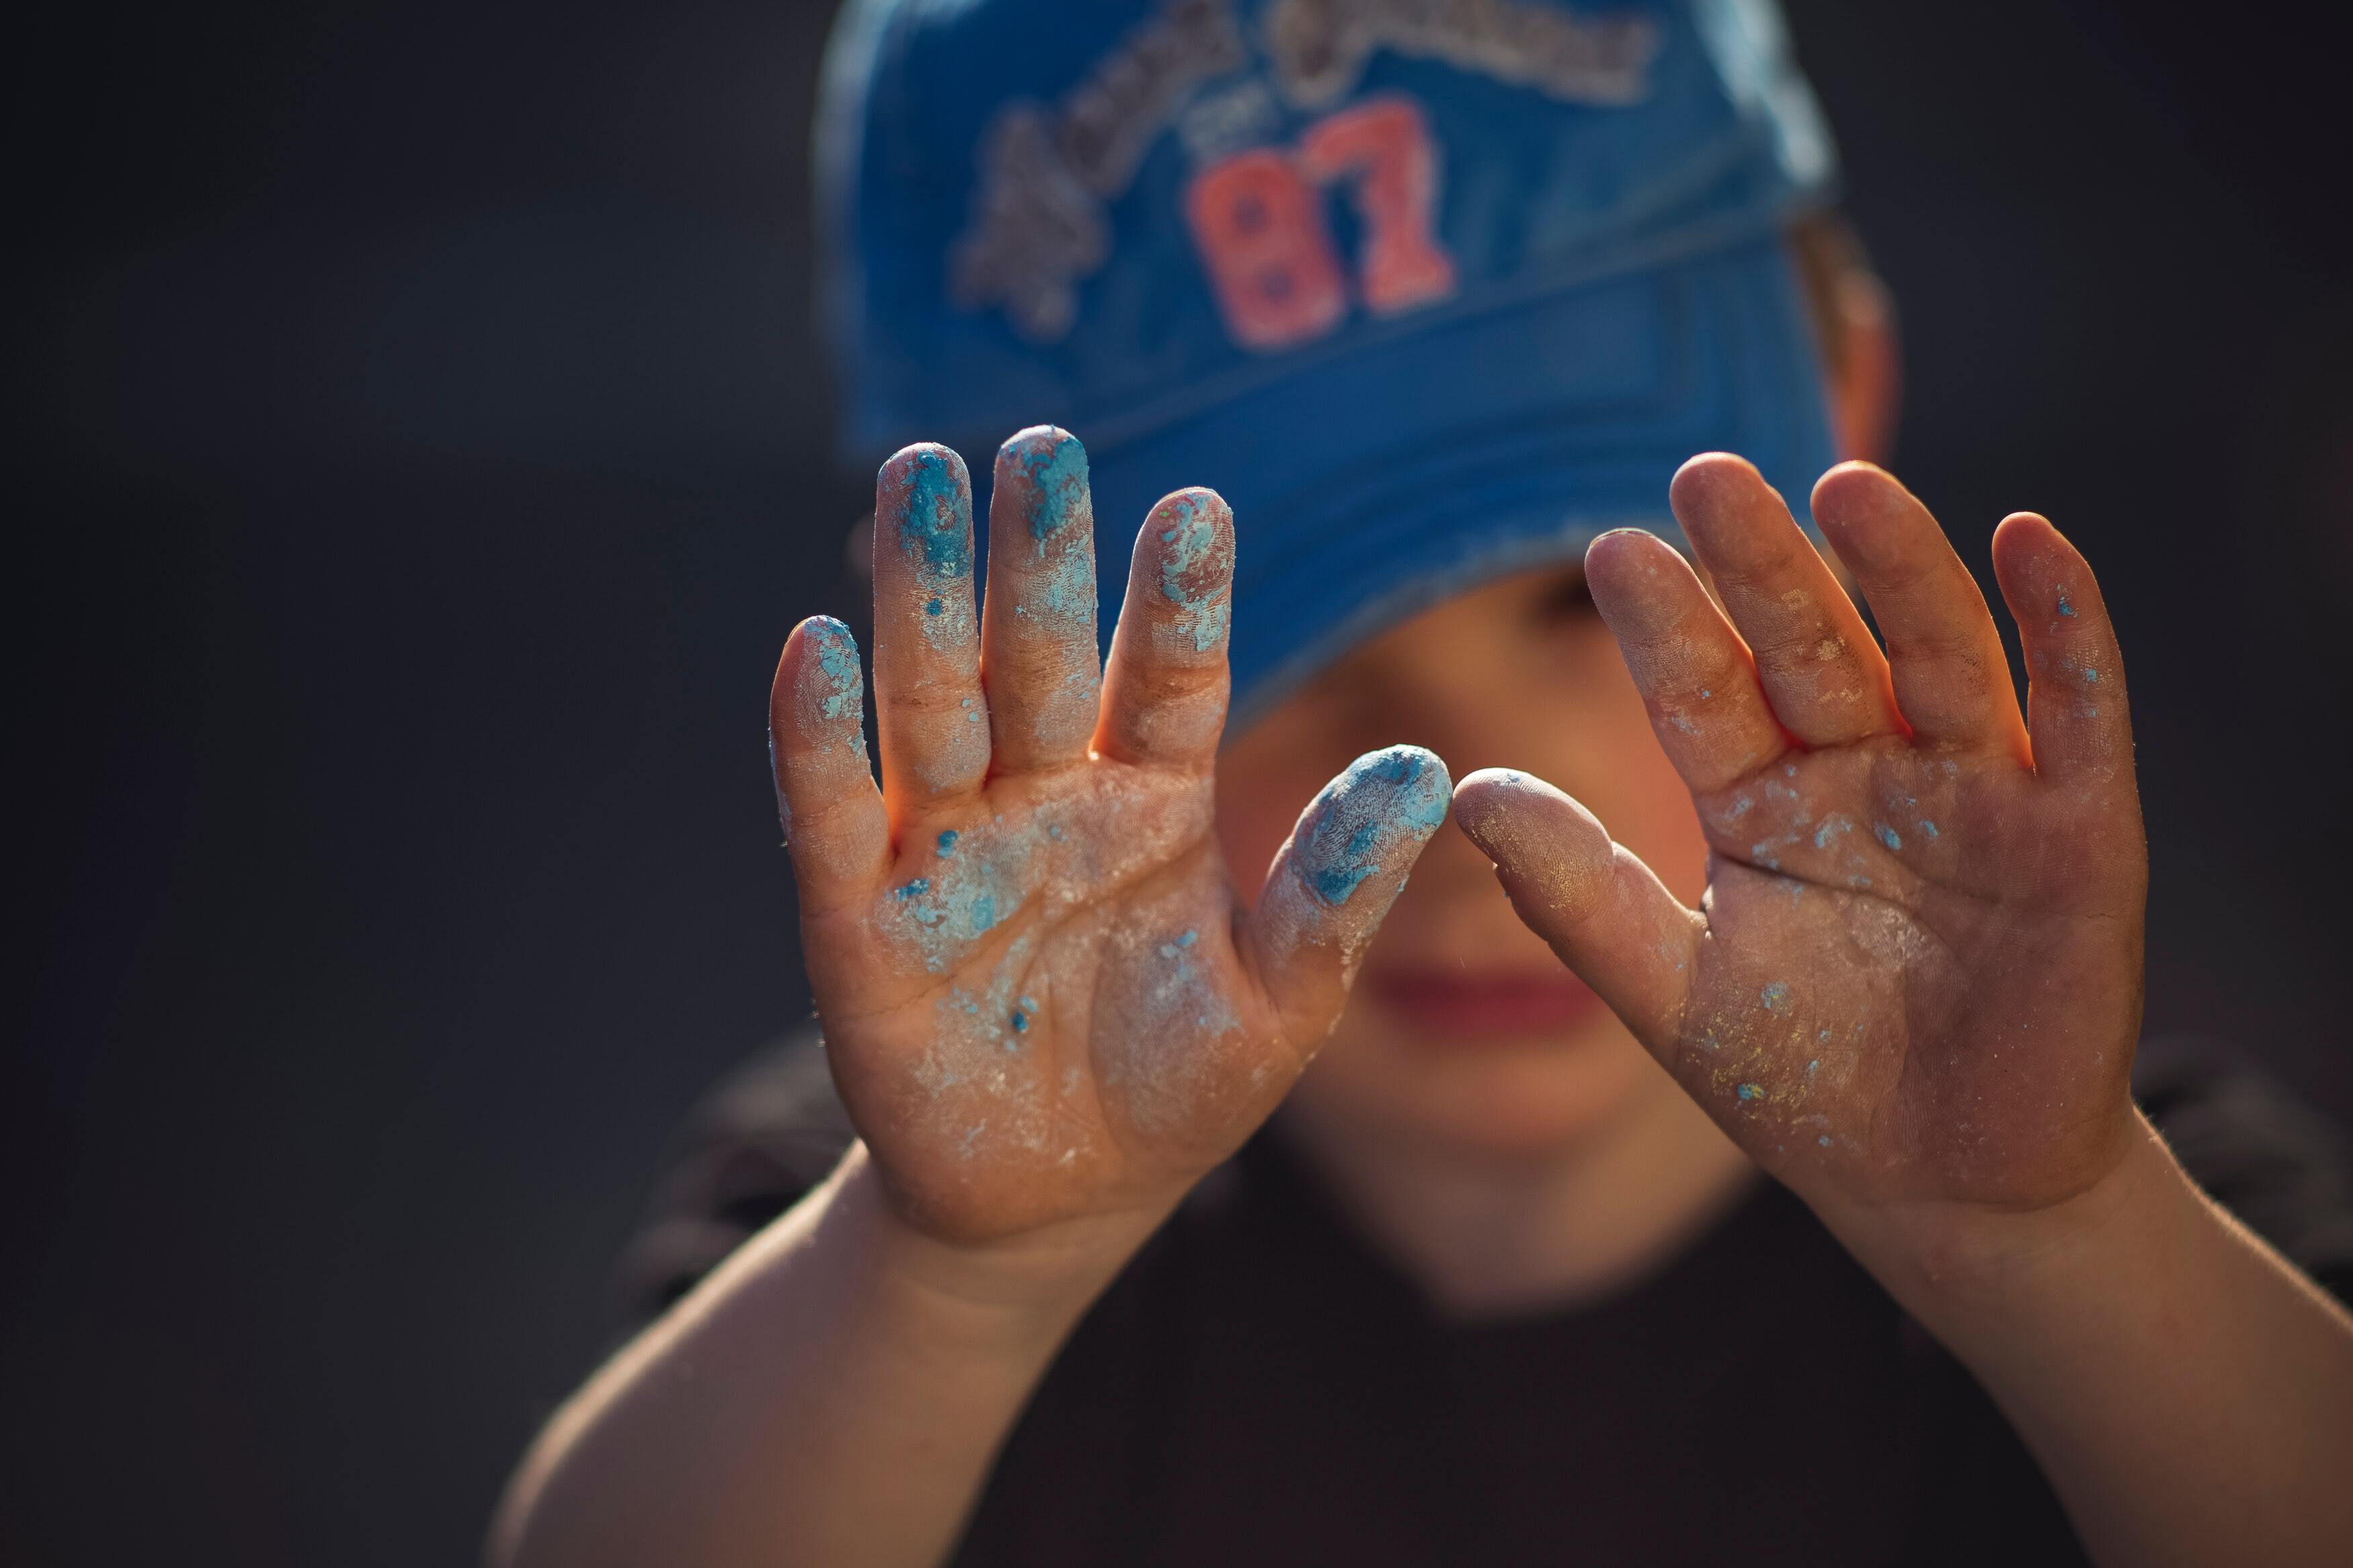 young boy wearing hat with paint on hands